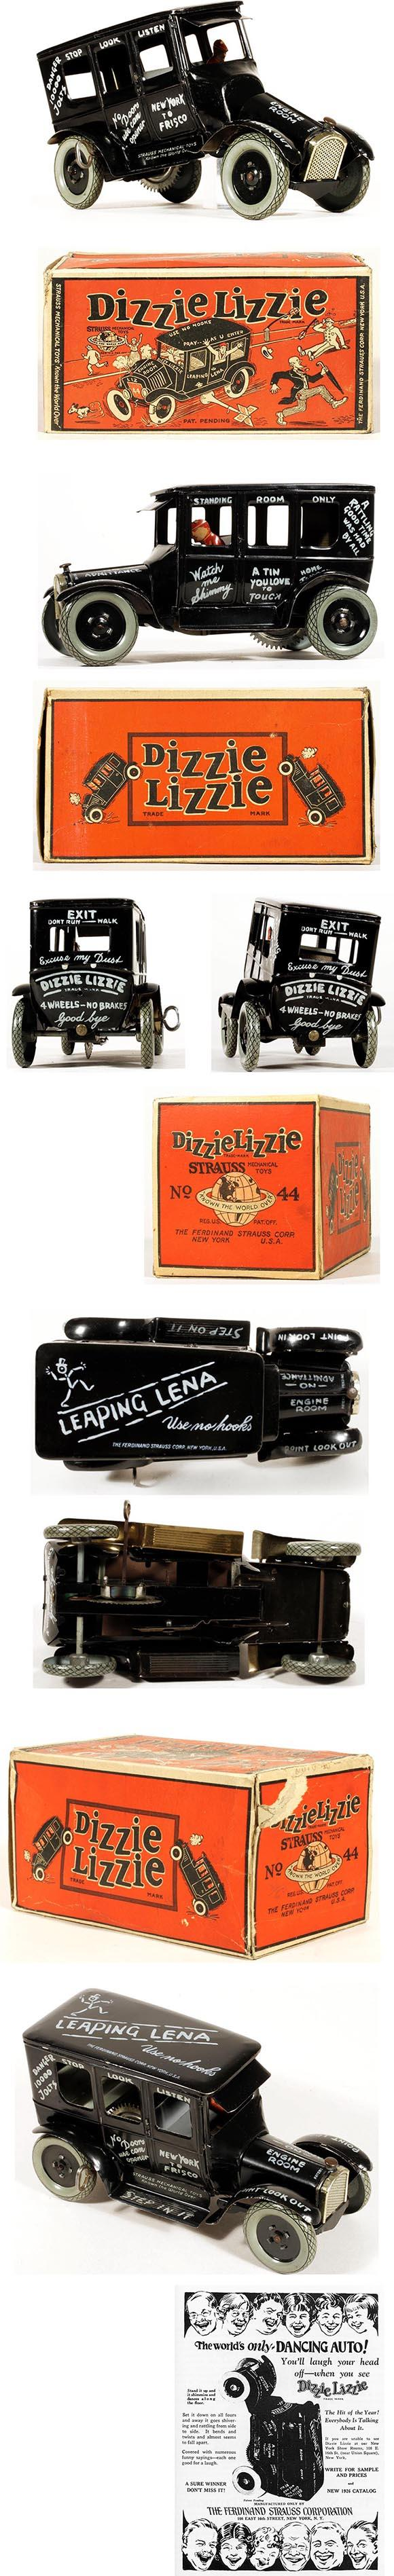 1925 Strauss, Dizzie Lizzie (Leaping Lena) in Original Box